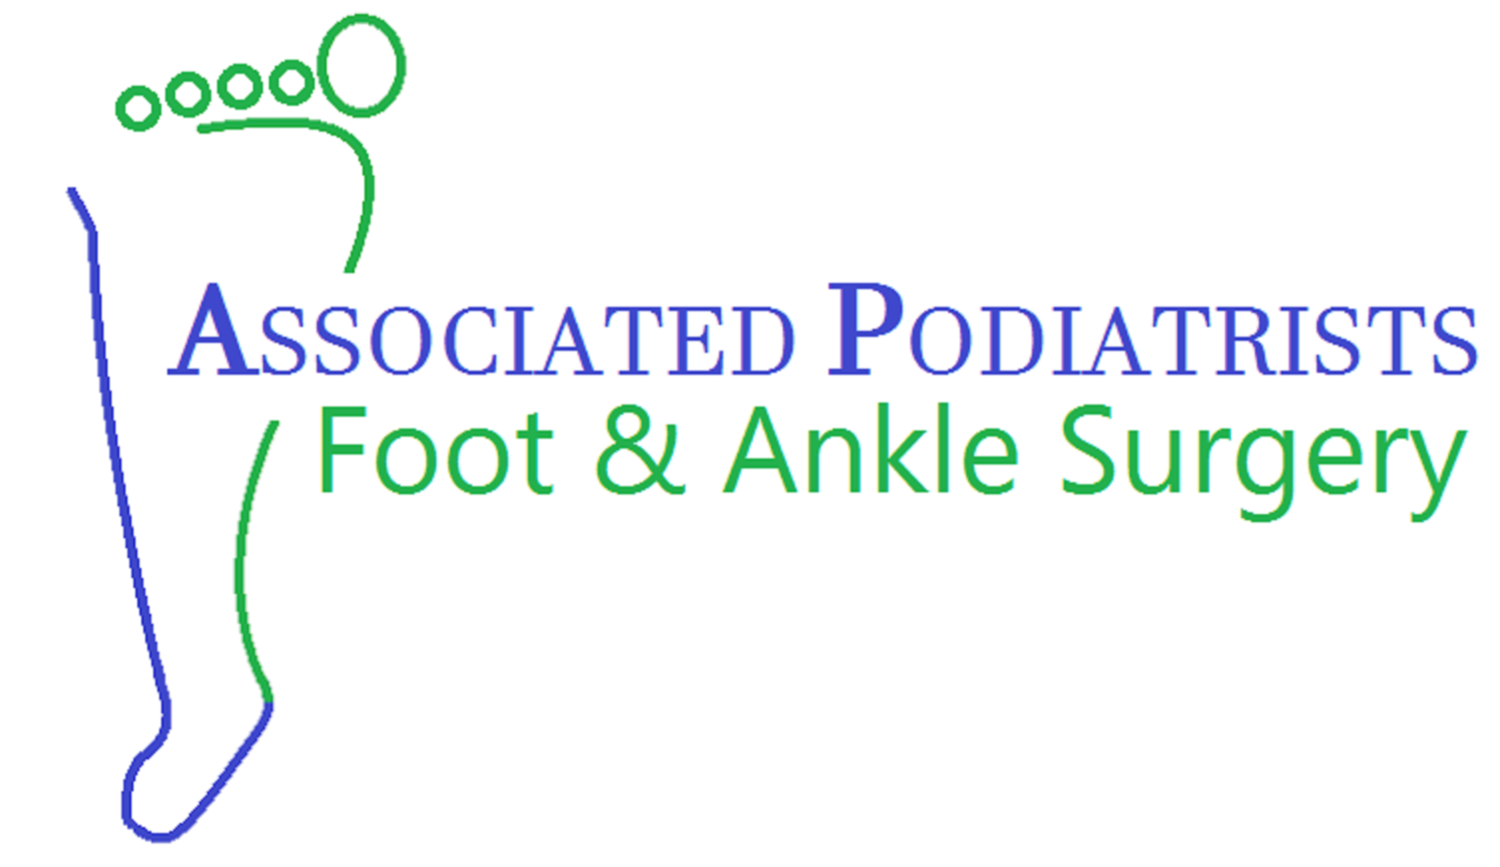 Associated Podiatrists